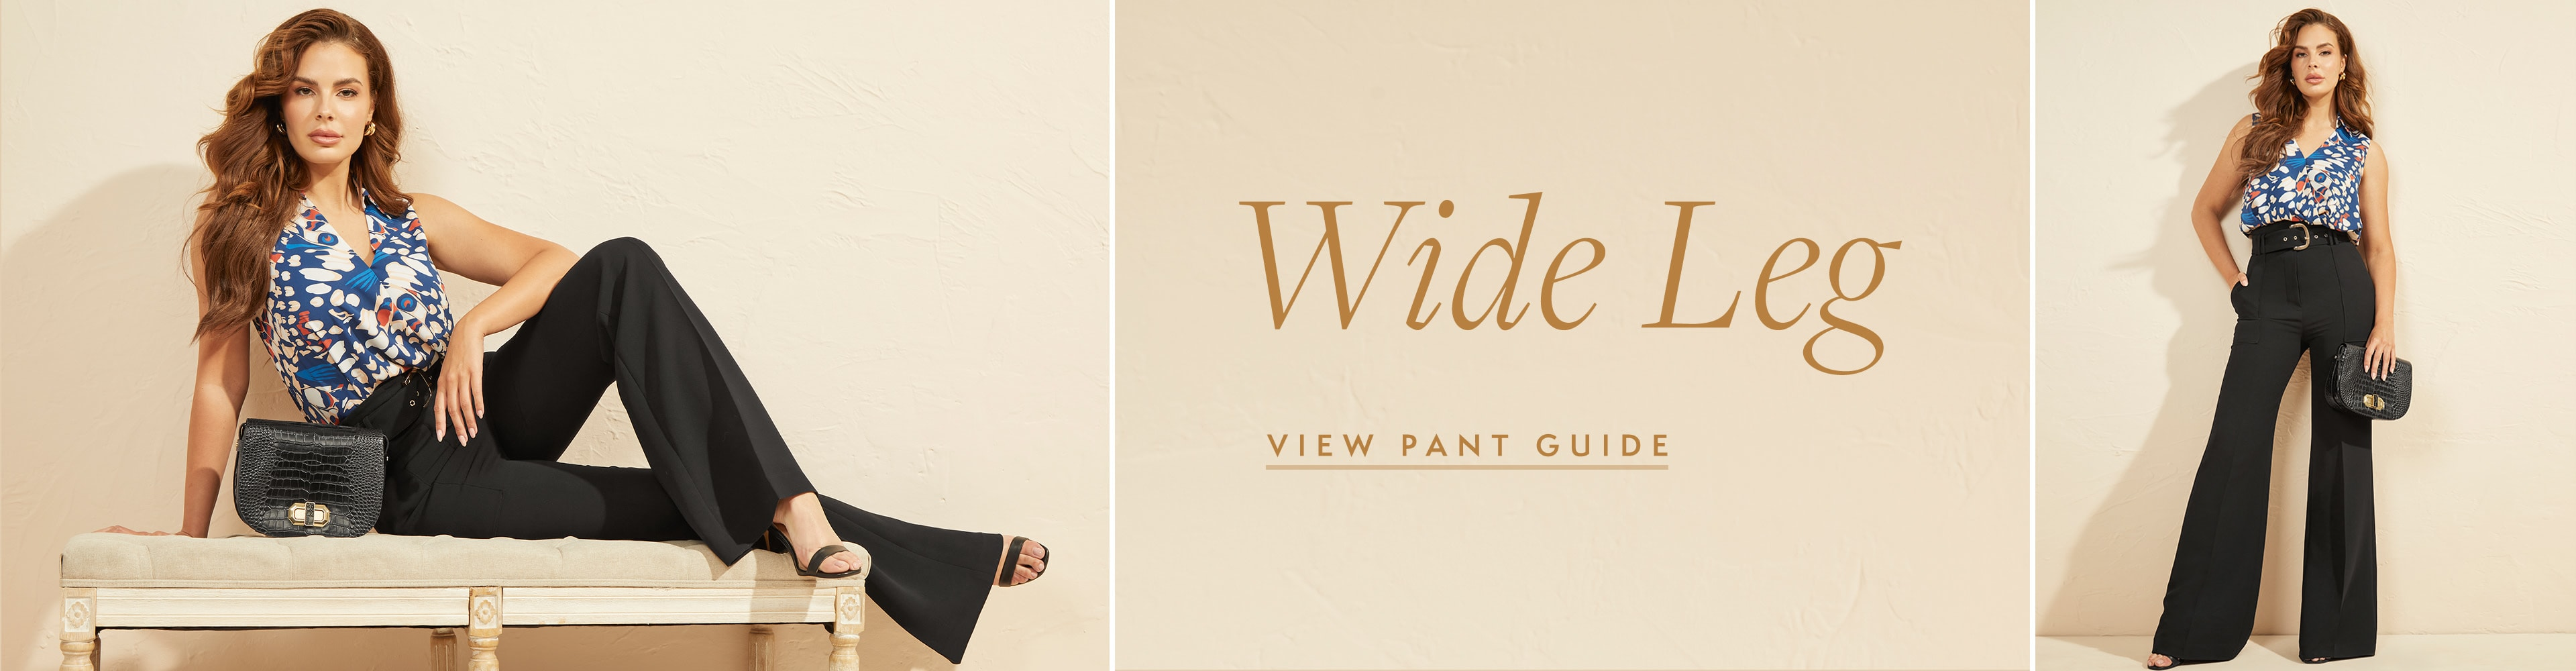 Wide Leg View Pant Guide